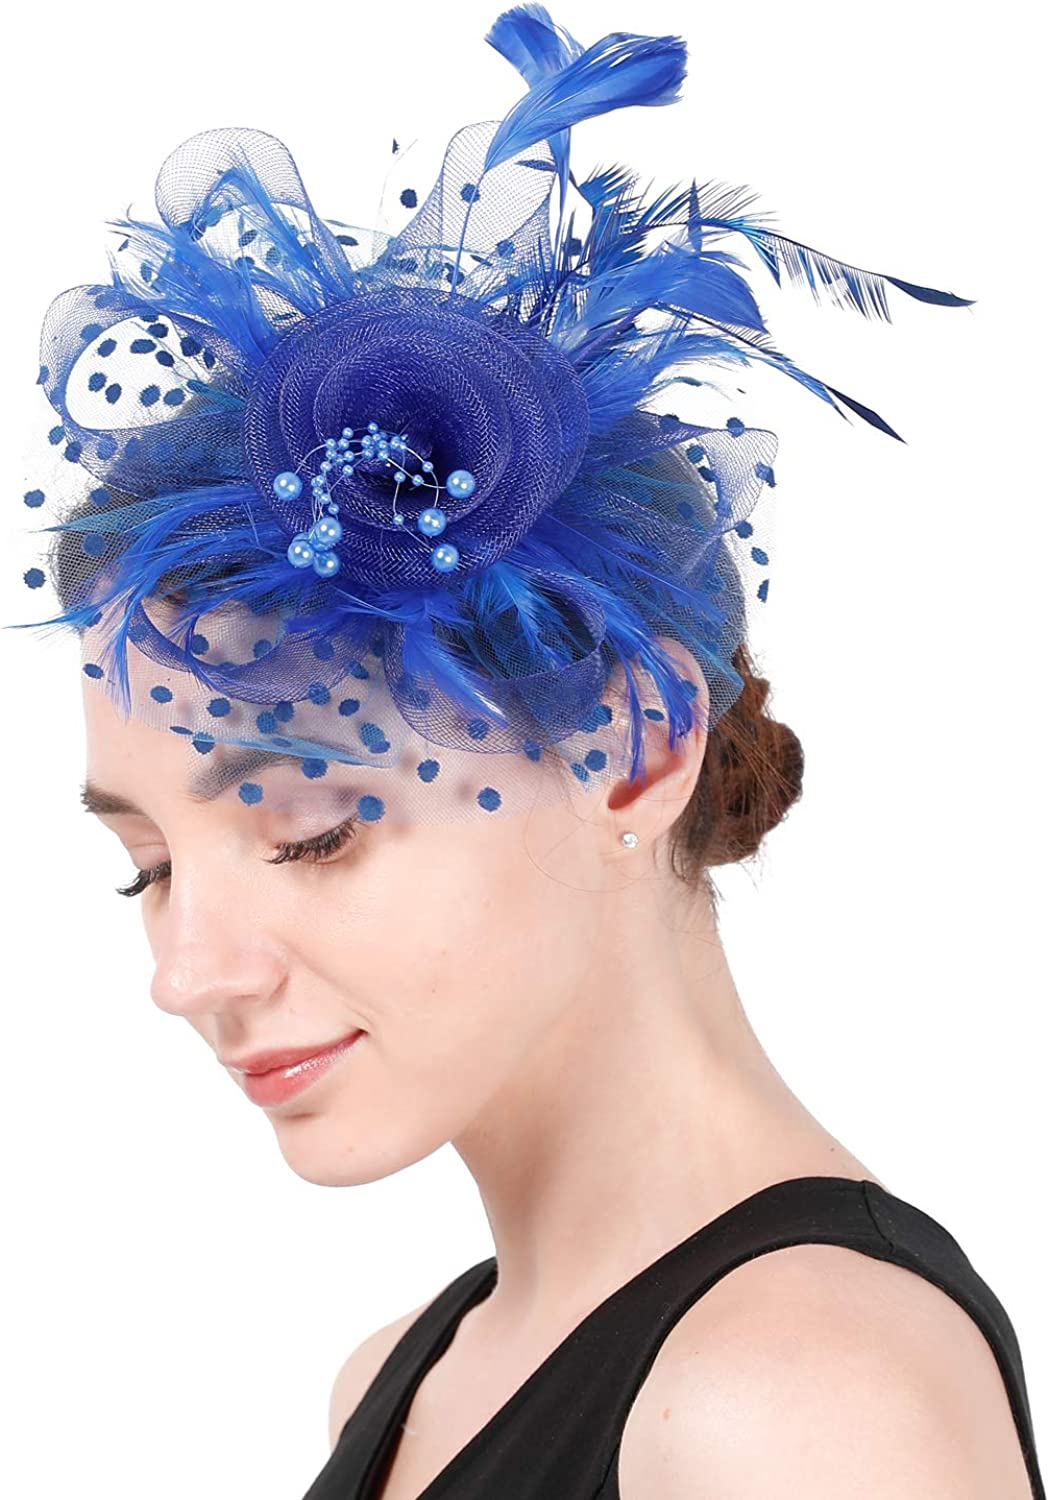 WsWt Fascinator Hat for Women Wedding Tea Party NEW before Max 75% OFF selling Kenturky Derby